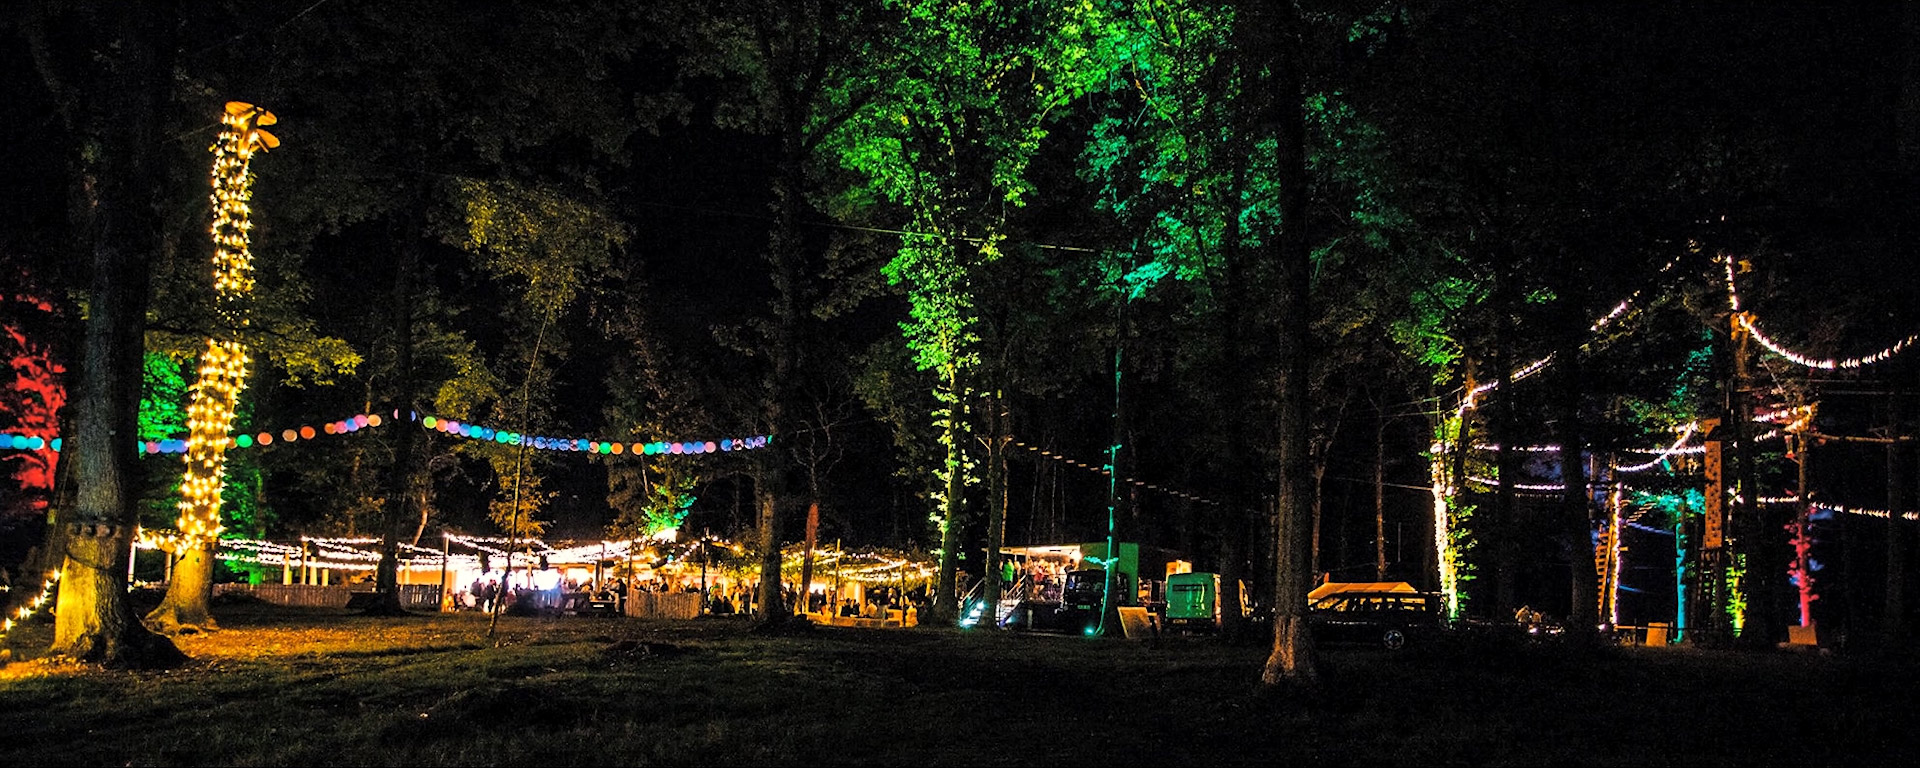 Harewood Forest Events at night